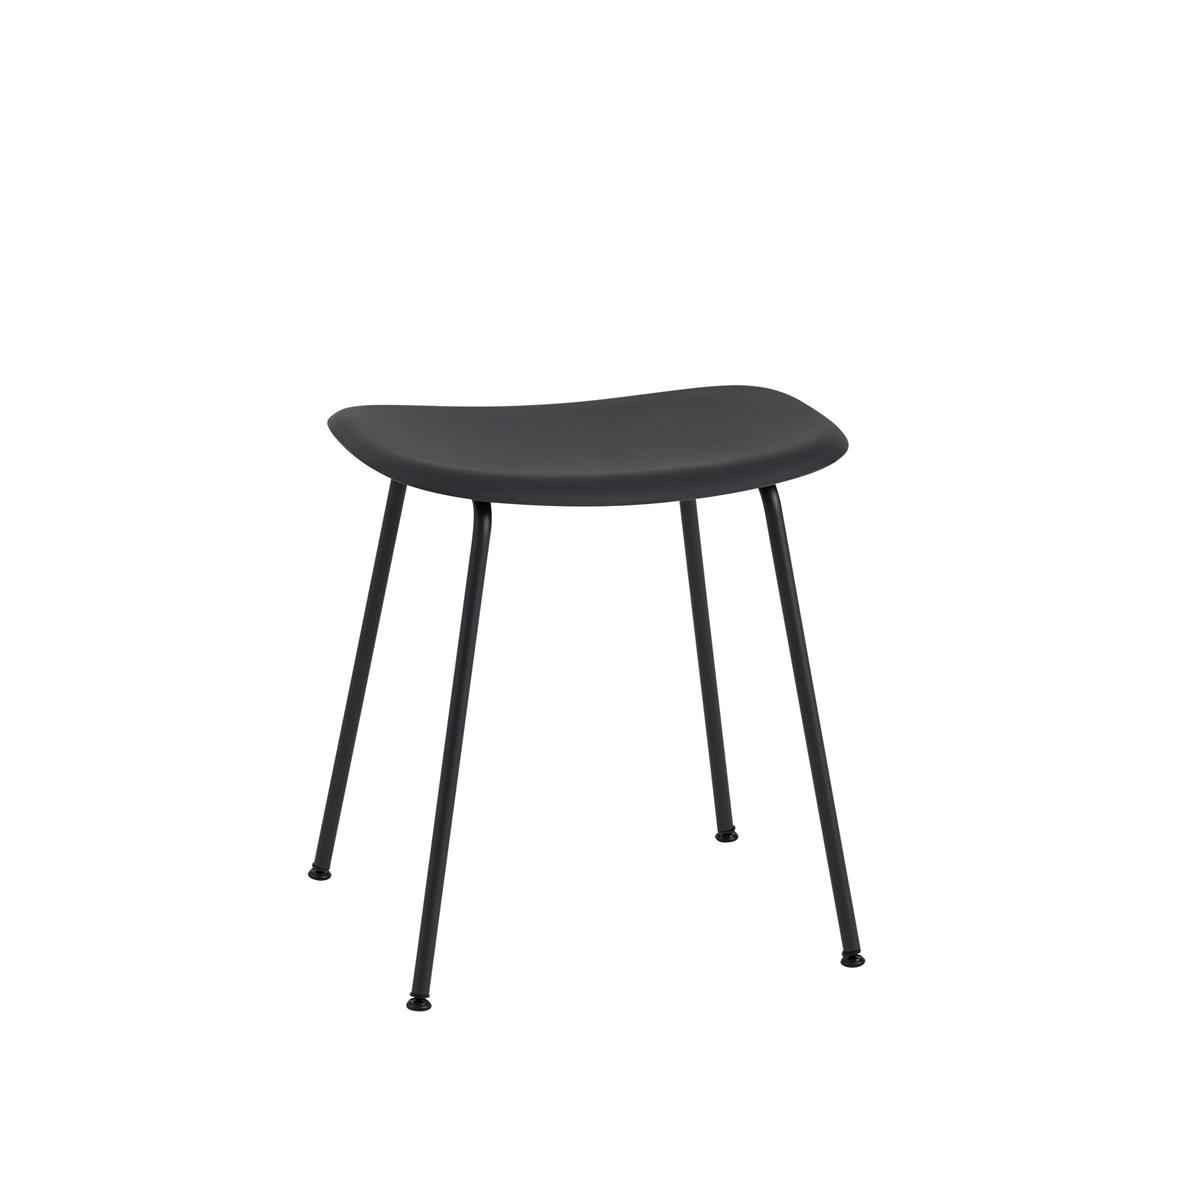 Fiber Stool Tube Base H45 - Black